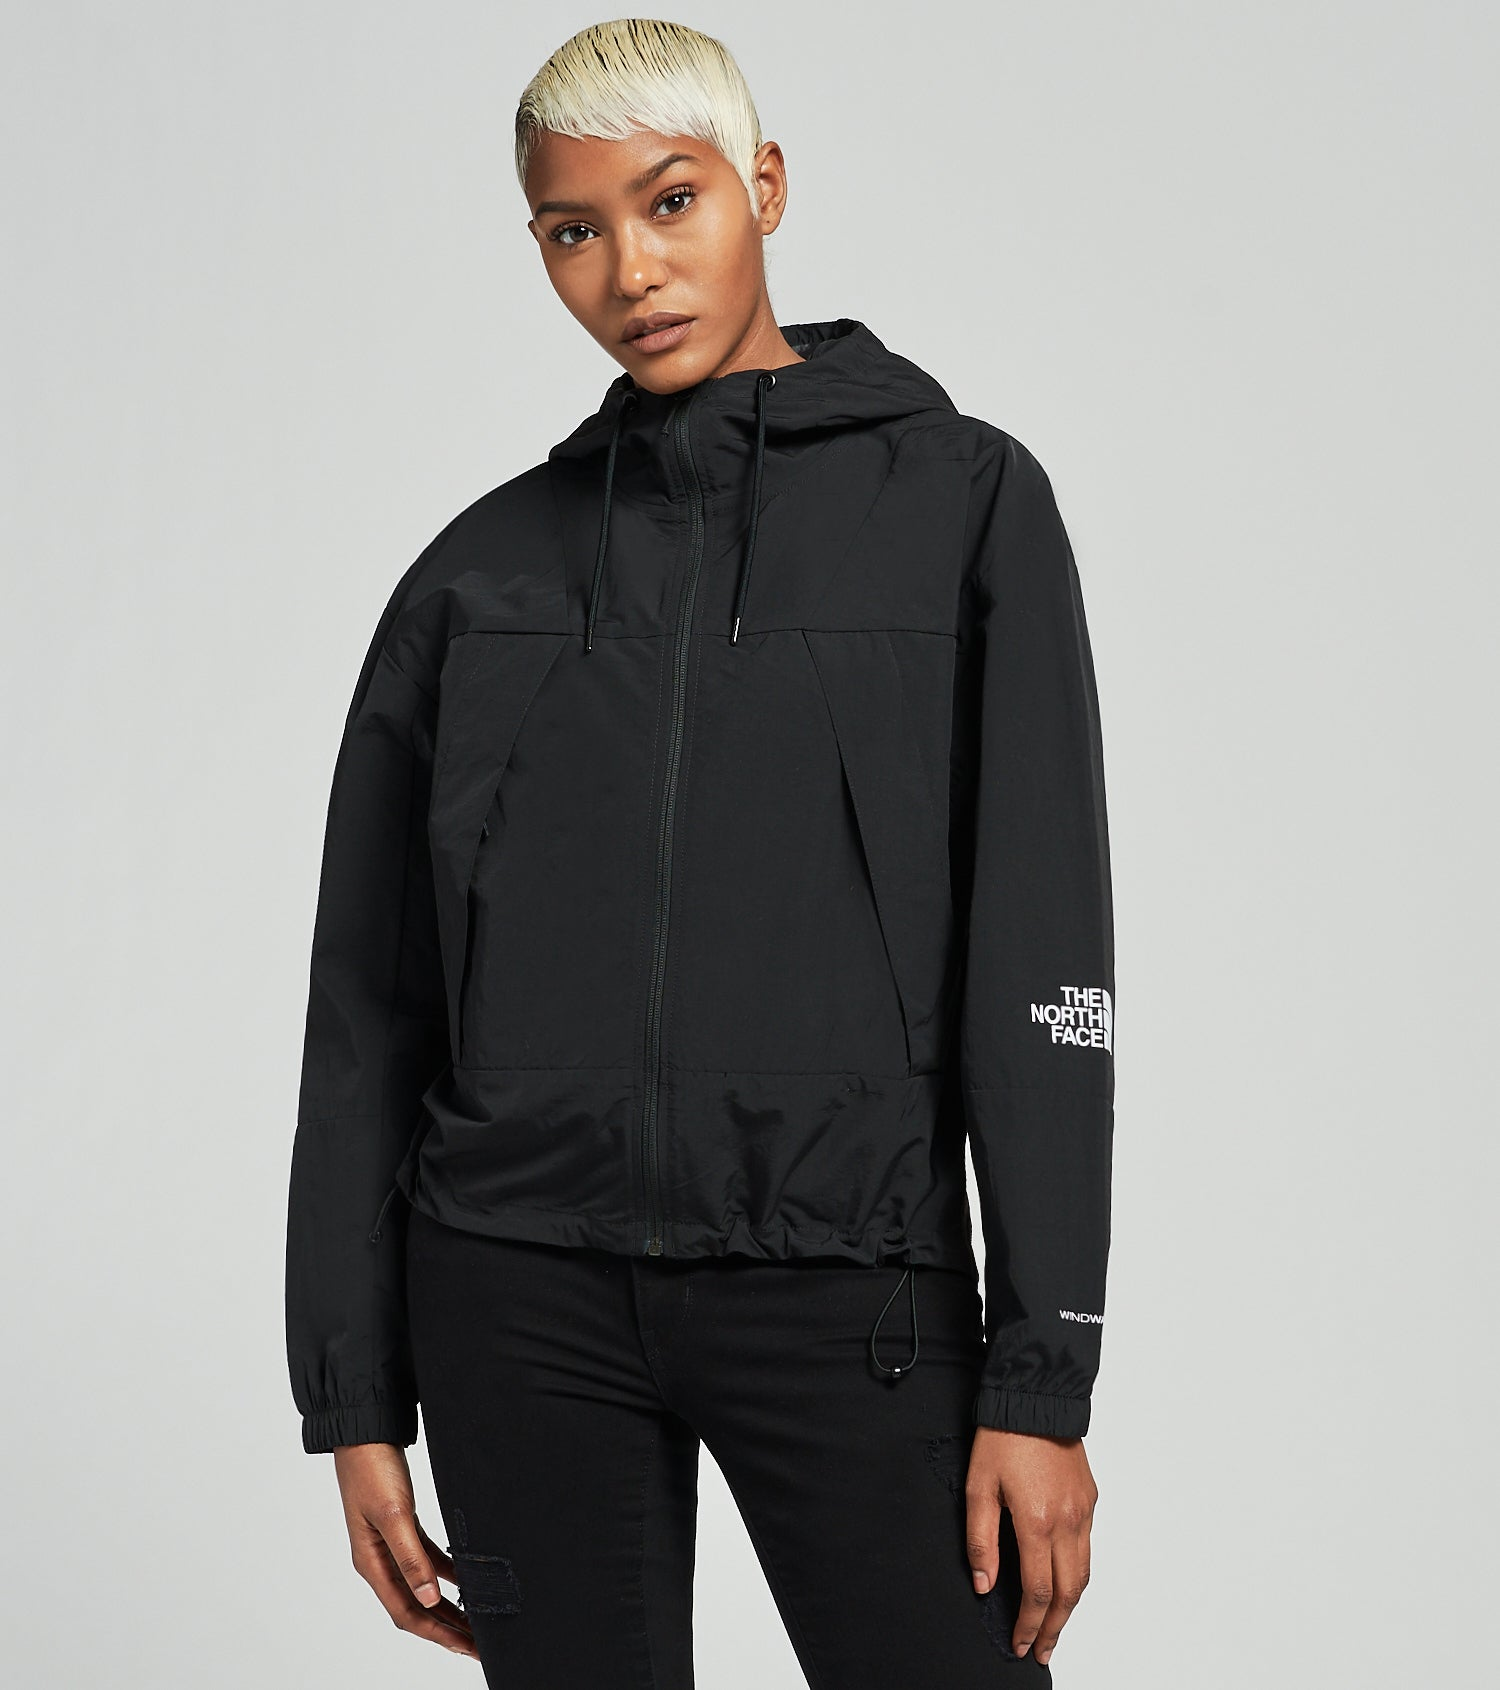 The North Face  Peril Wind Jacket  Black - NF0A4AFS-JK3 | Jimmy Jazz